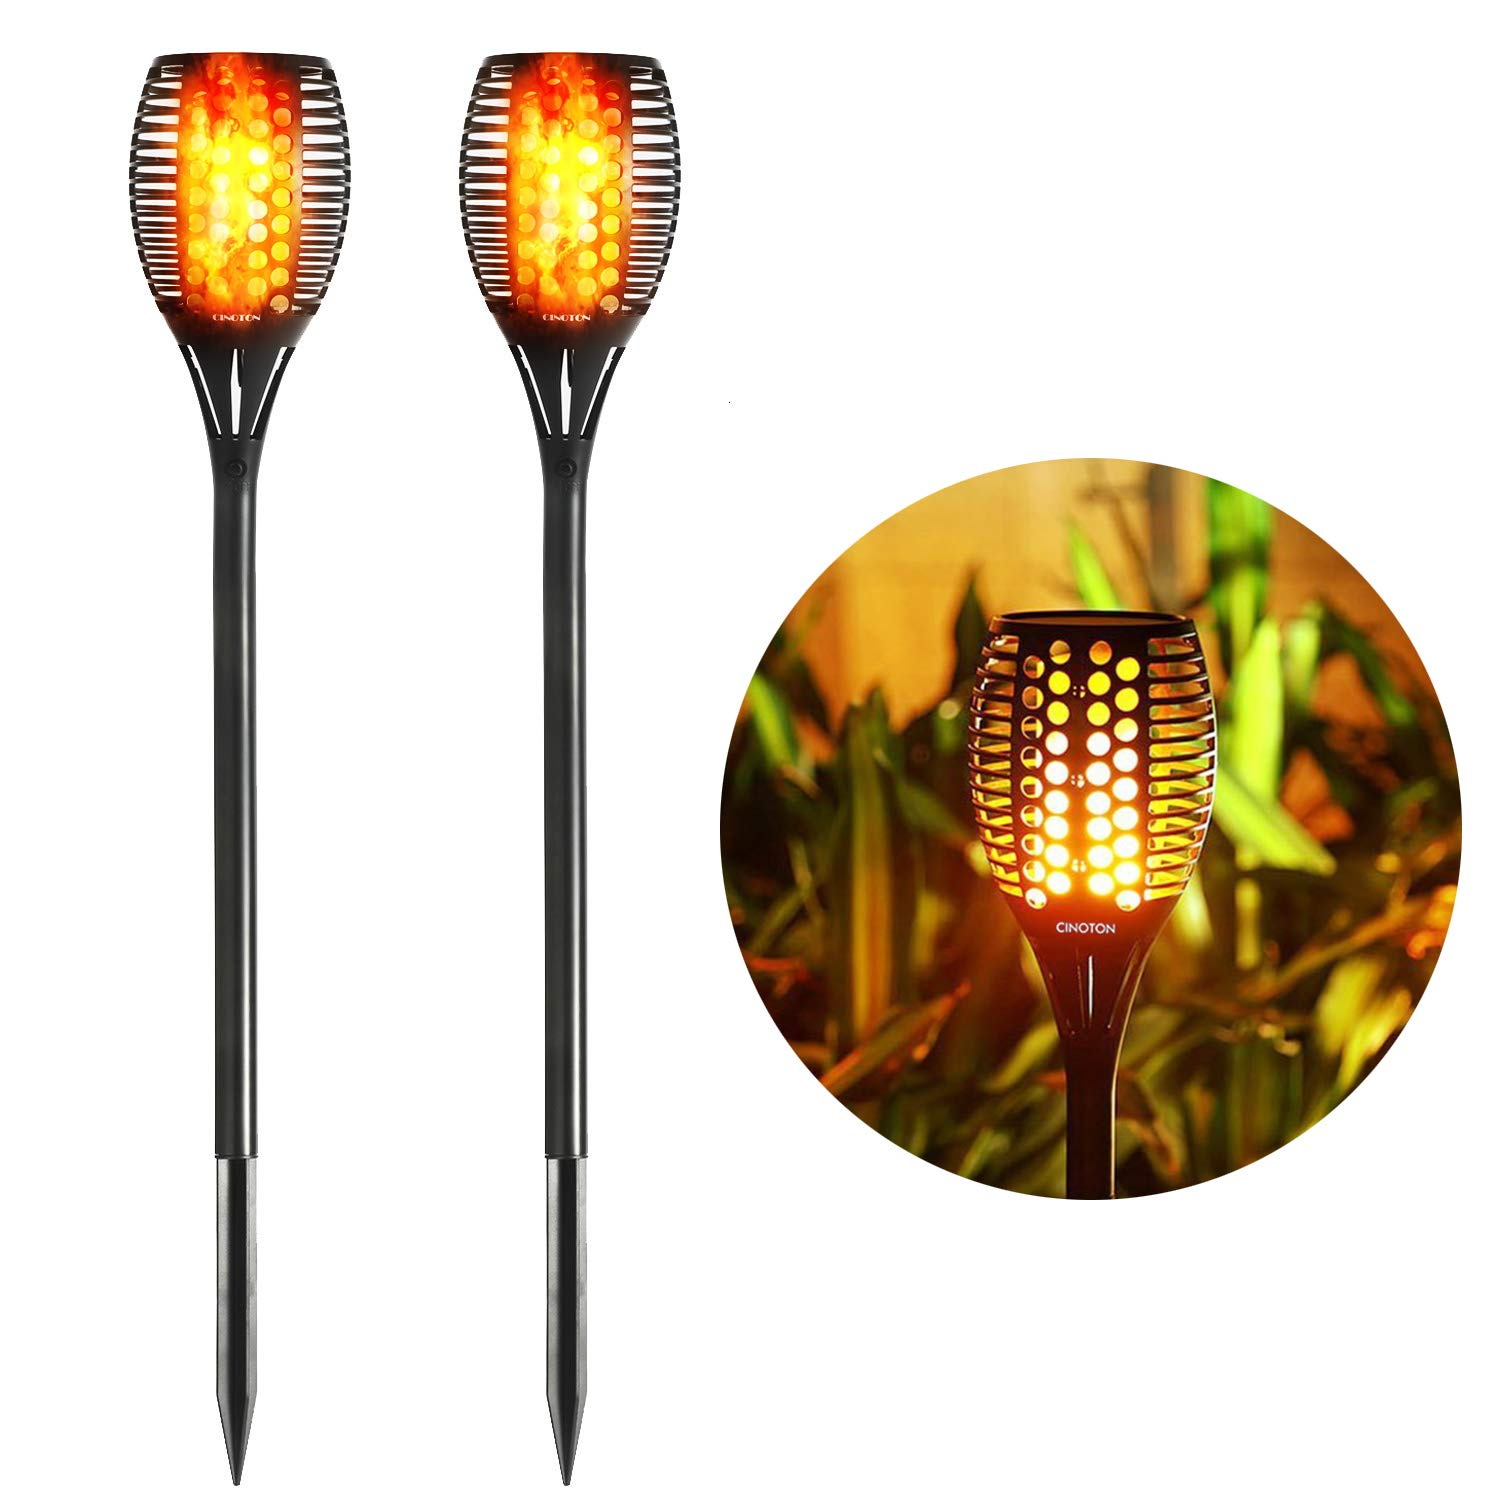 Cinoton Solar Light,Path Torches Dancing Flame Lighting 96 LED Dusk to Dawn Flickering Torches Outdoor Waterproof garden decorations (2) by CINOTON